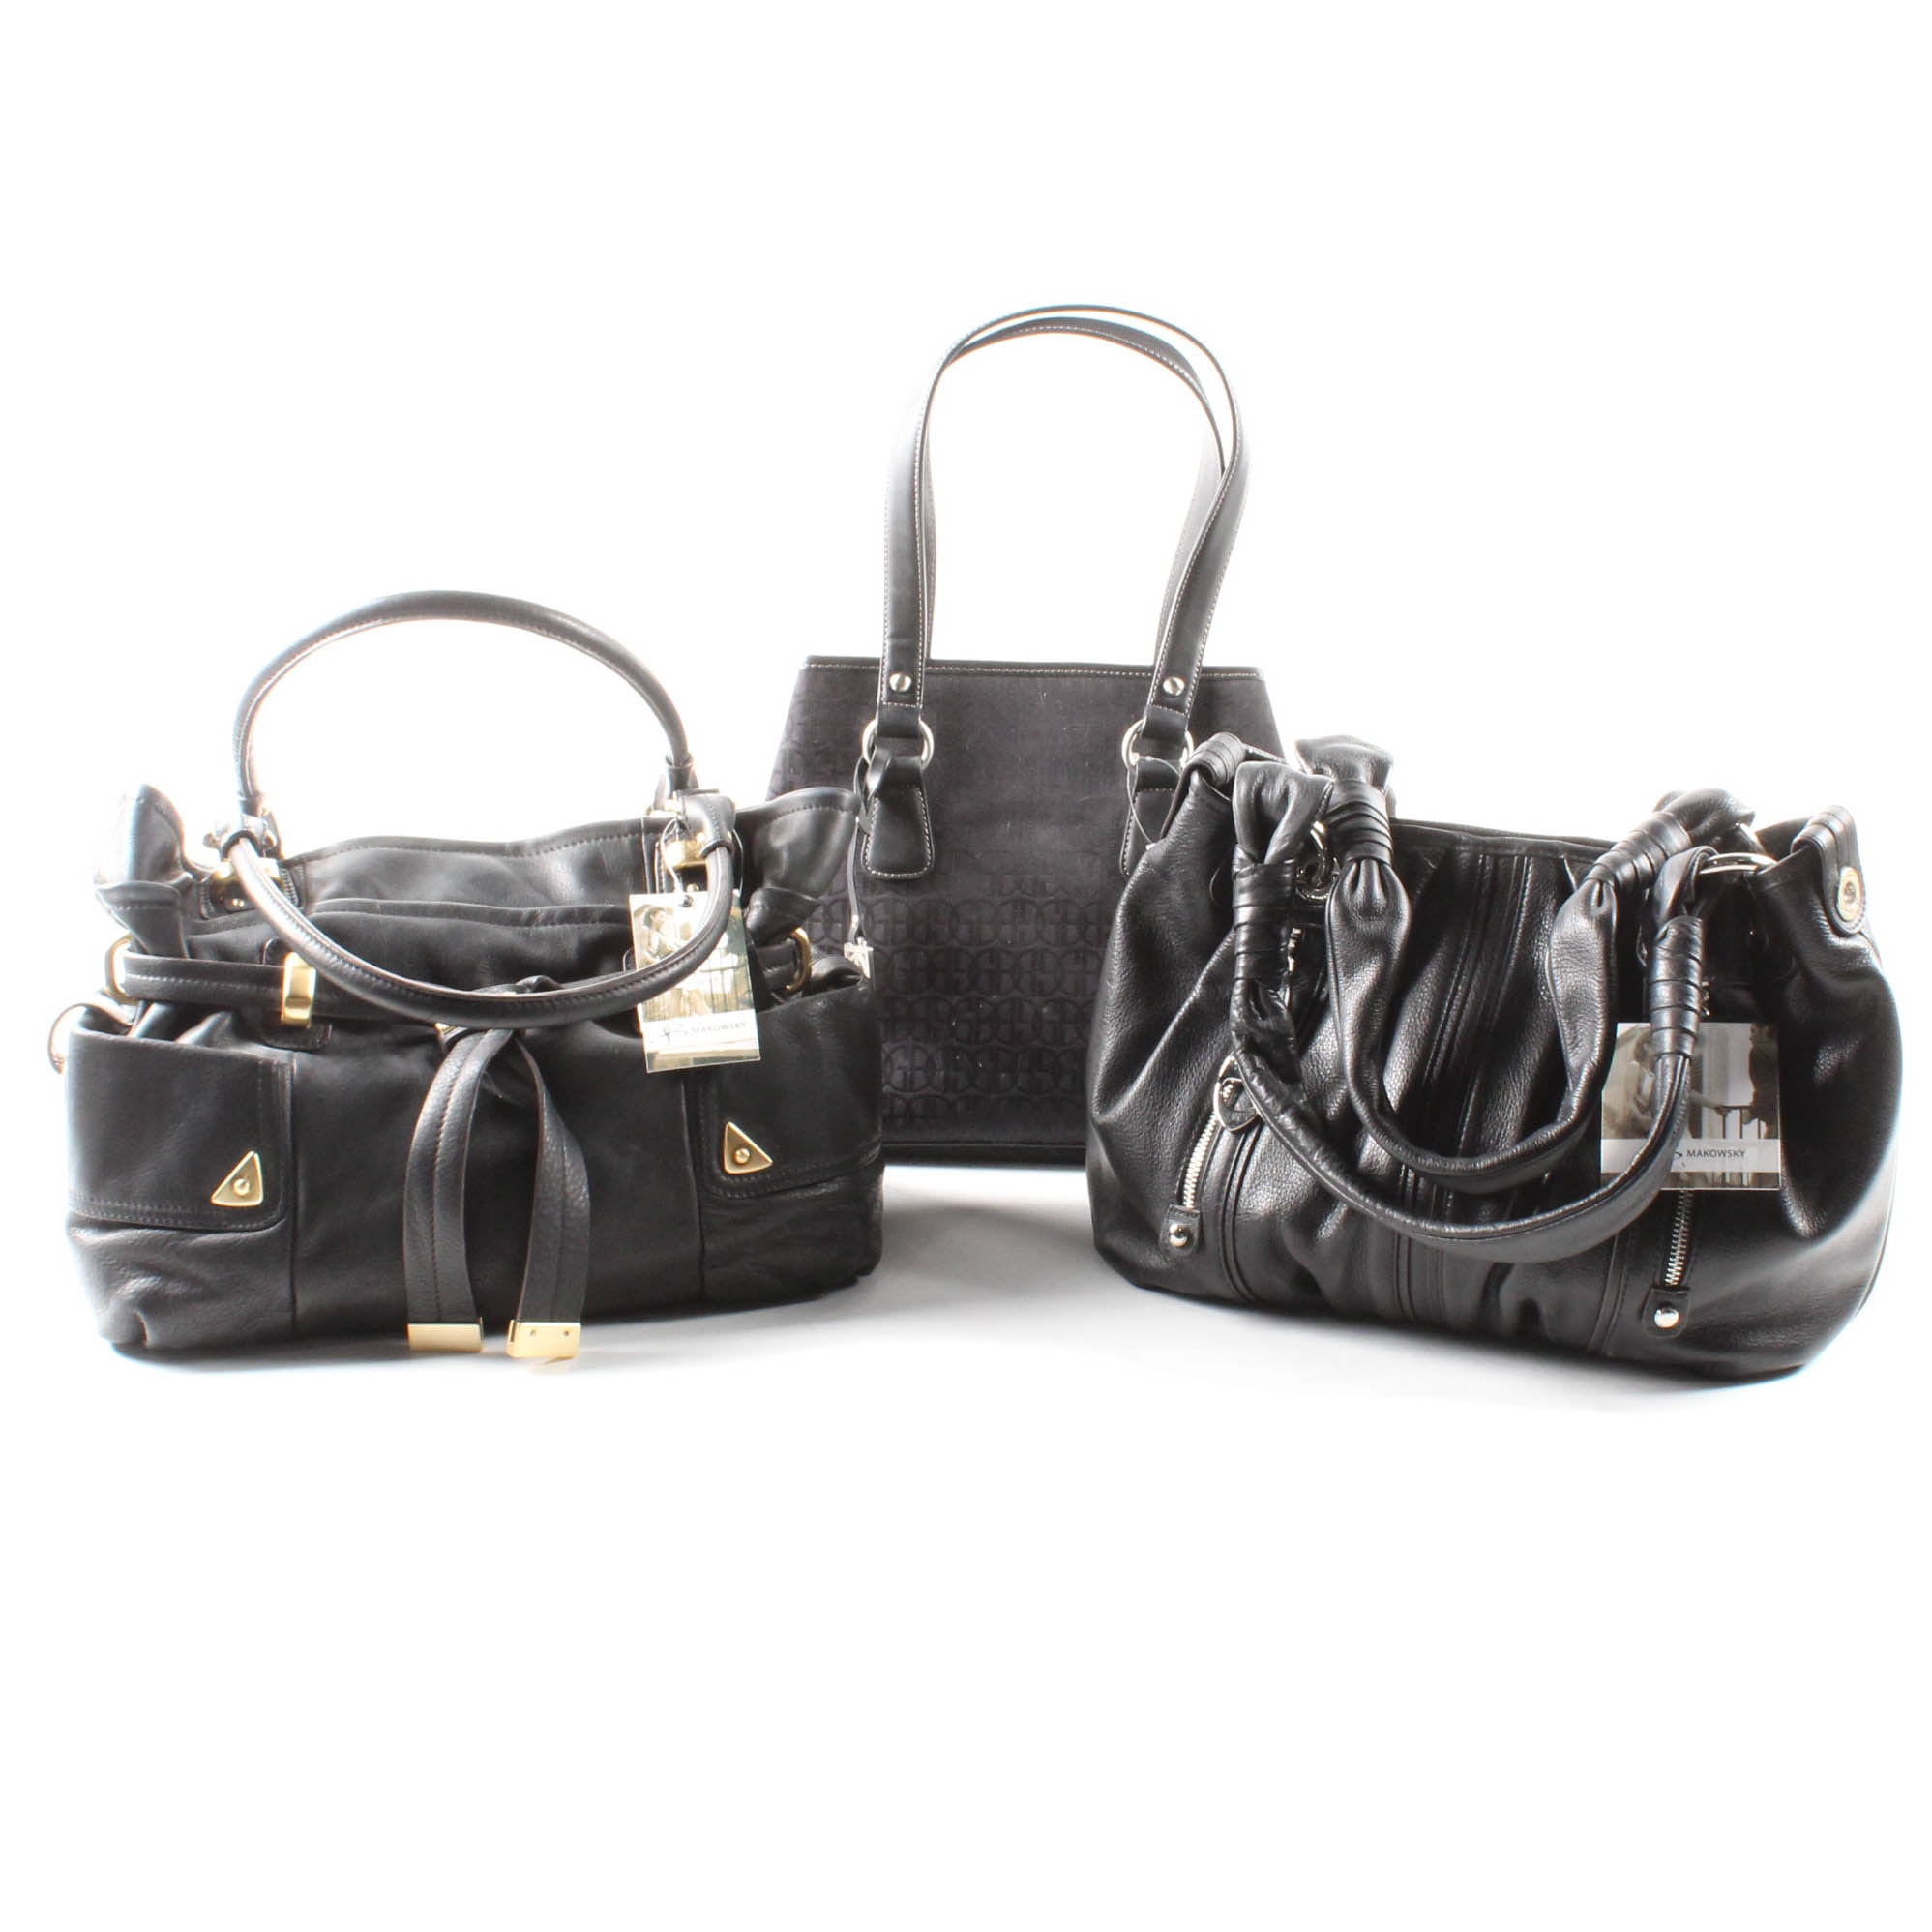 Black Handbags by Giani Bernini and B. Makowsky